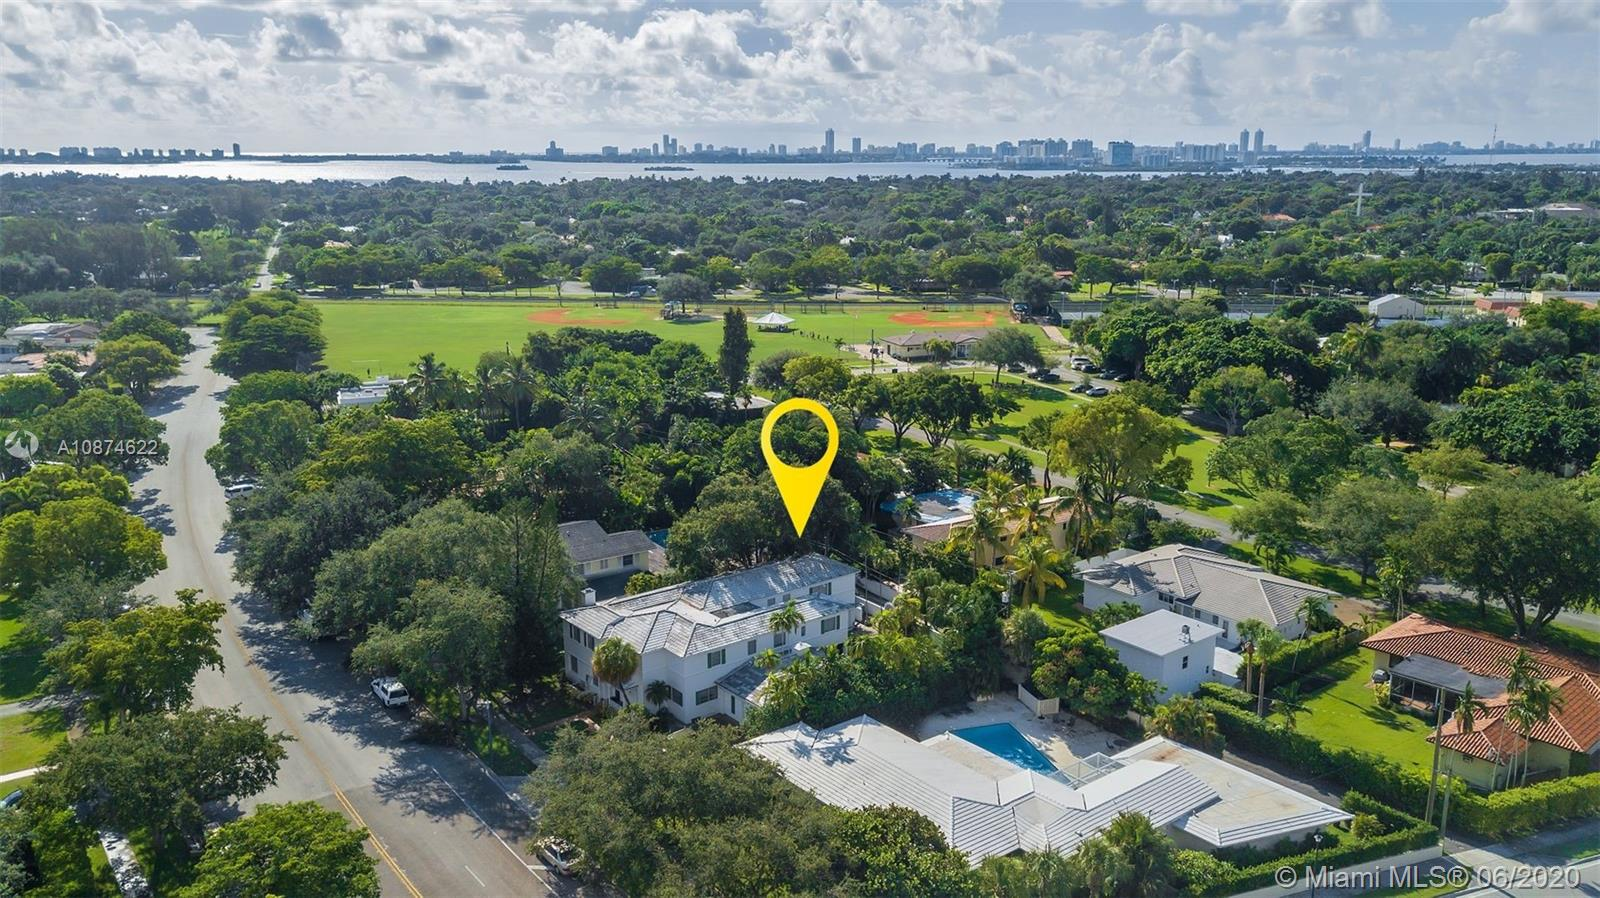 Property for sale at 620 Grand Concourse, Miami Shores,  Florida 33138